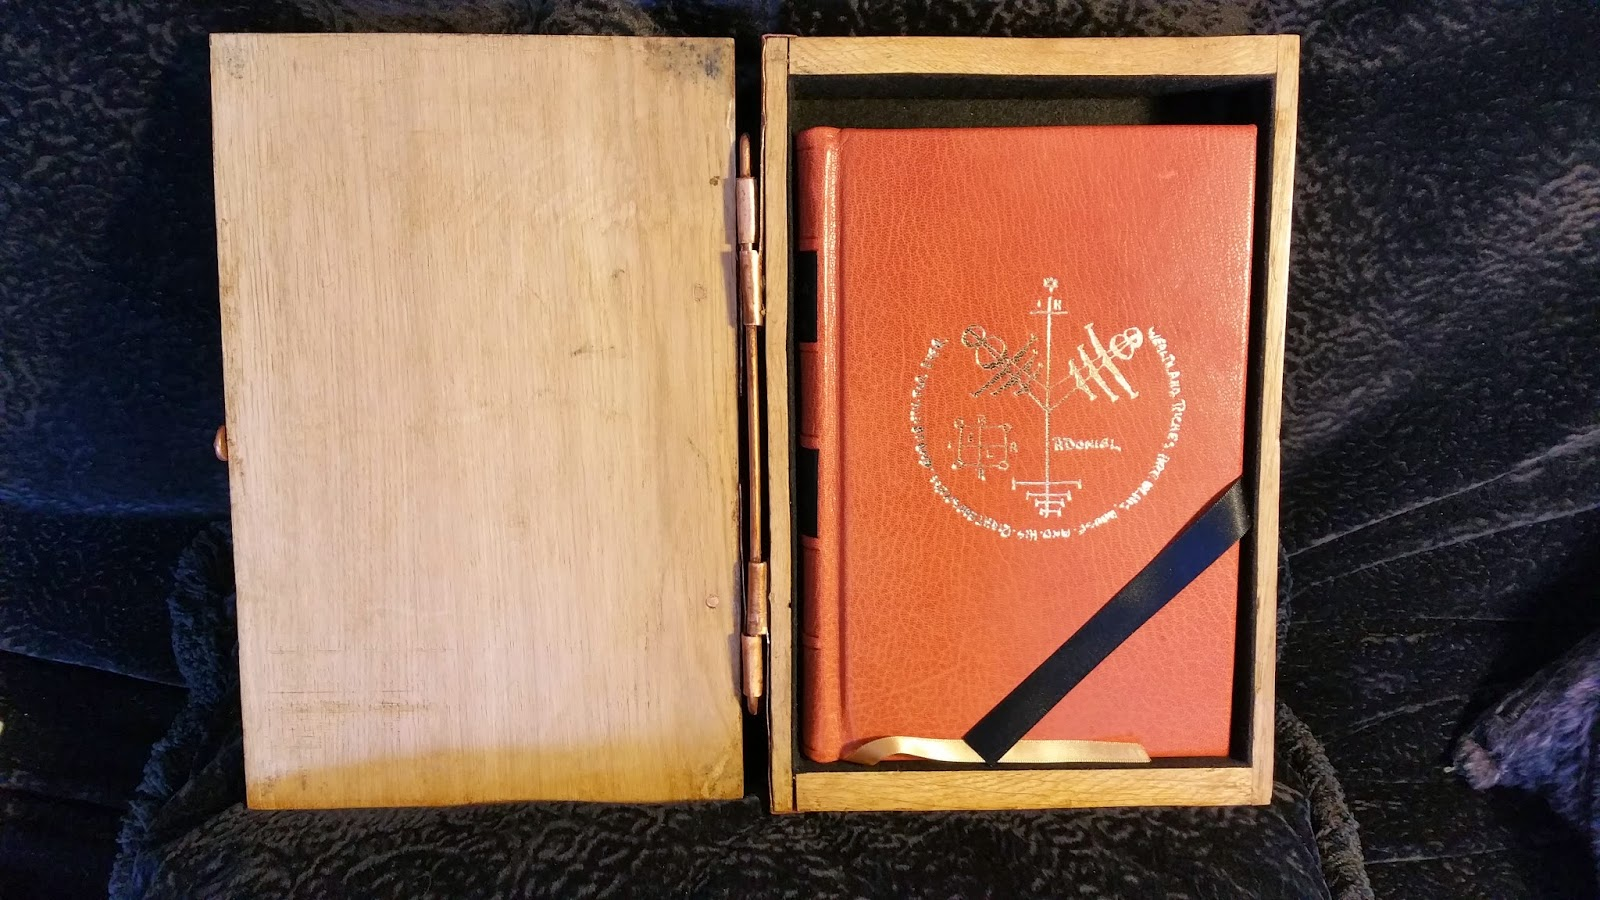 The Book Is Bound In Full, Hand Finished, Terracotta Goat The Leather Has  An Almost Candylike Scent, Like Cherry Taffy The Cover Is Gilt Blocked  With A